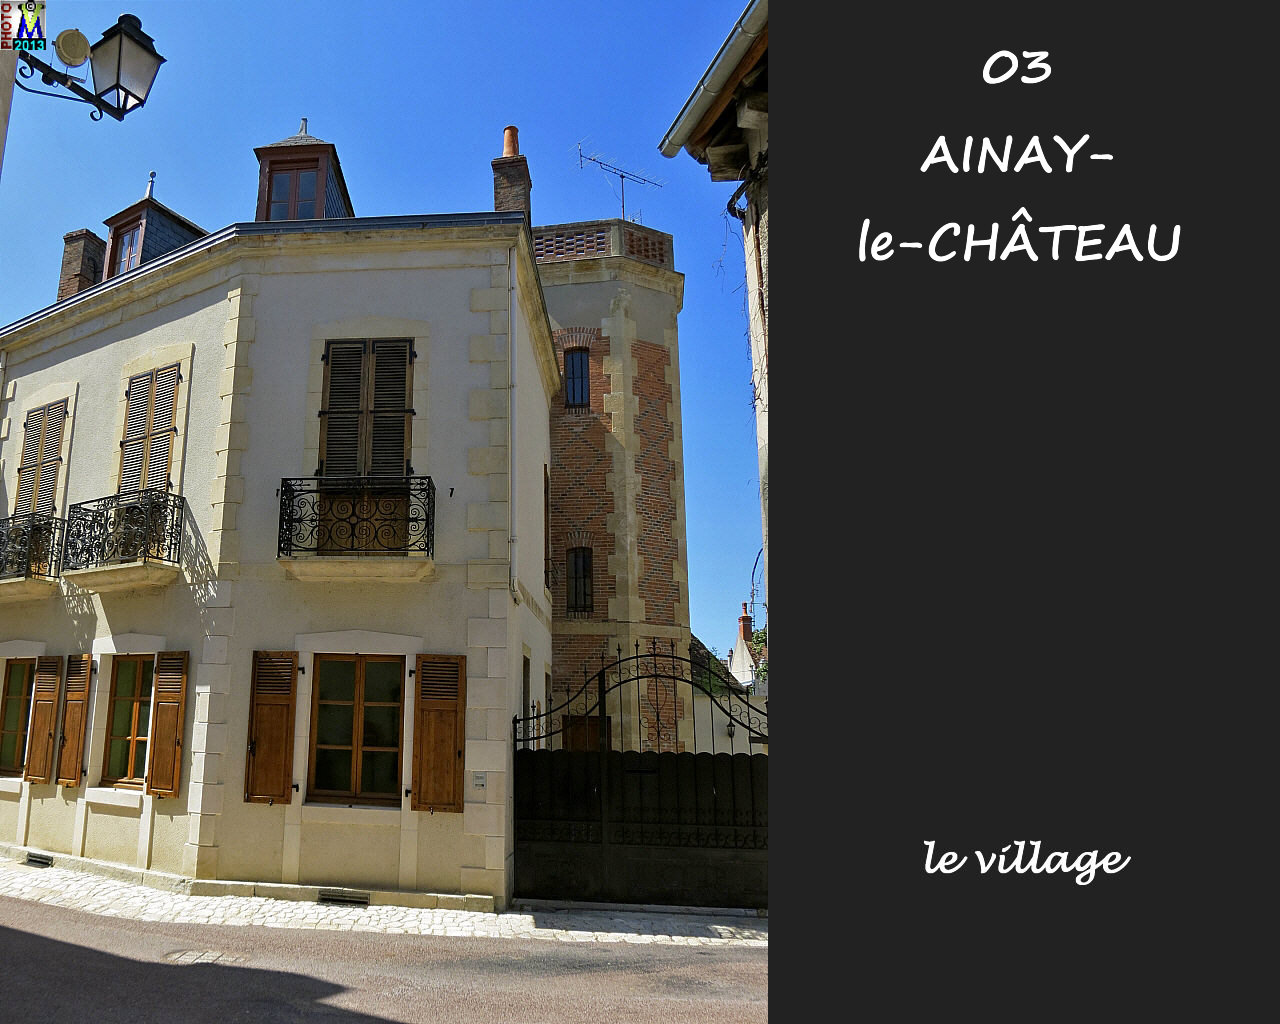 03AINAY-CHATEAU_village_106.jpg